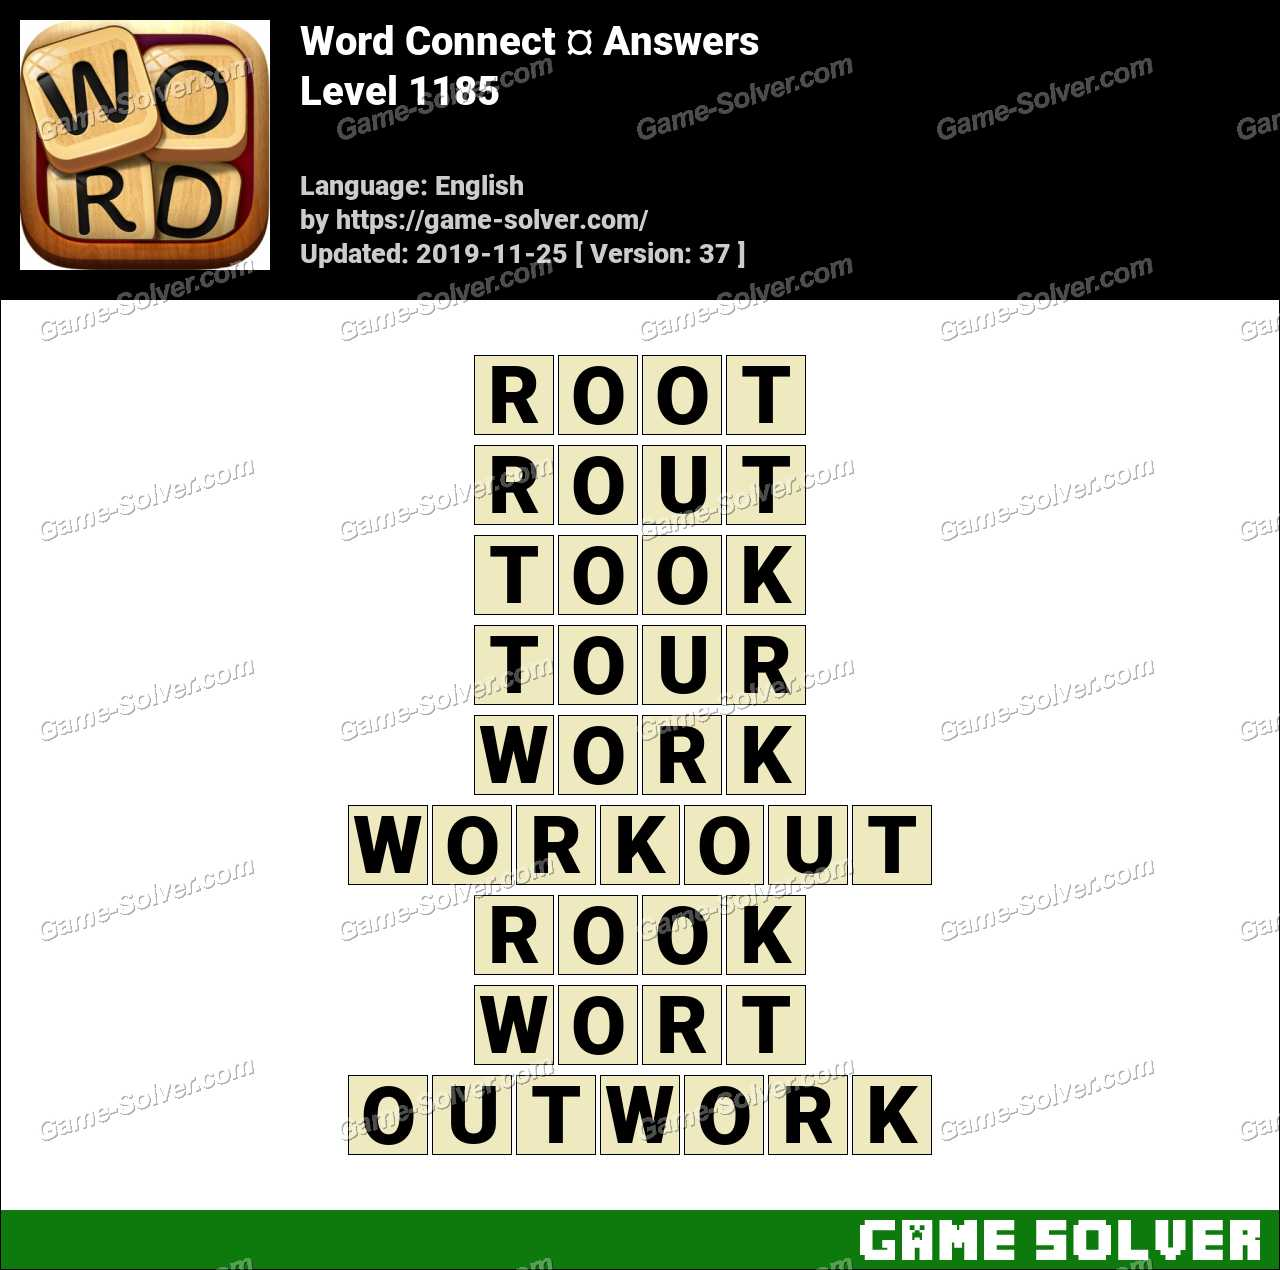 Word Connect Level 1185 Answers